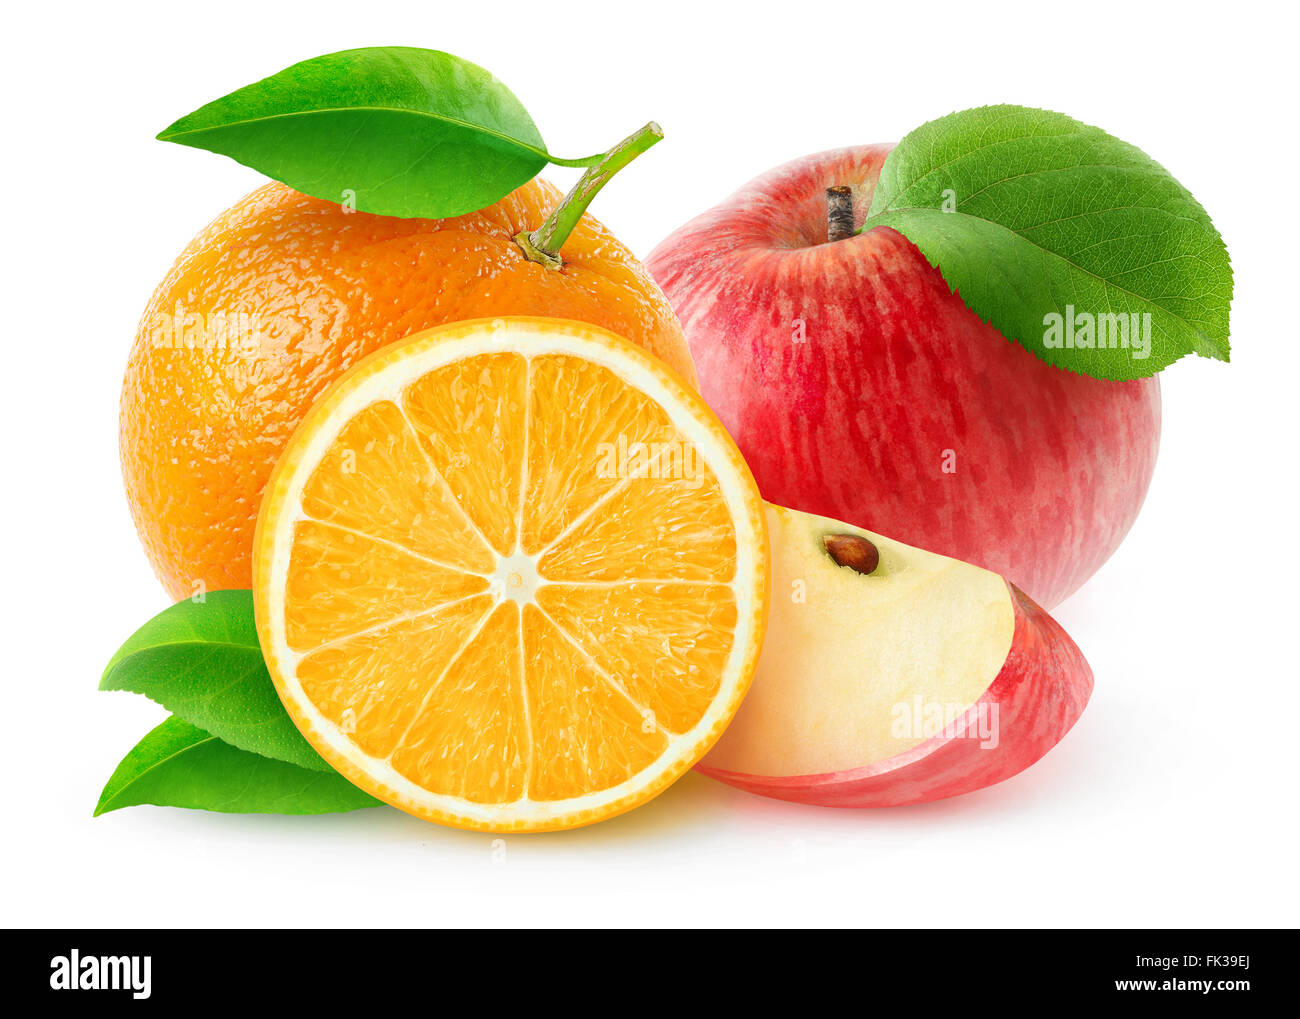 Apples and oranges isolated on white, with clipping path - Stock Image